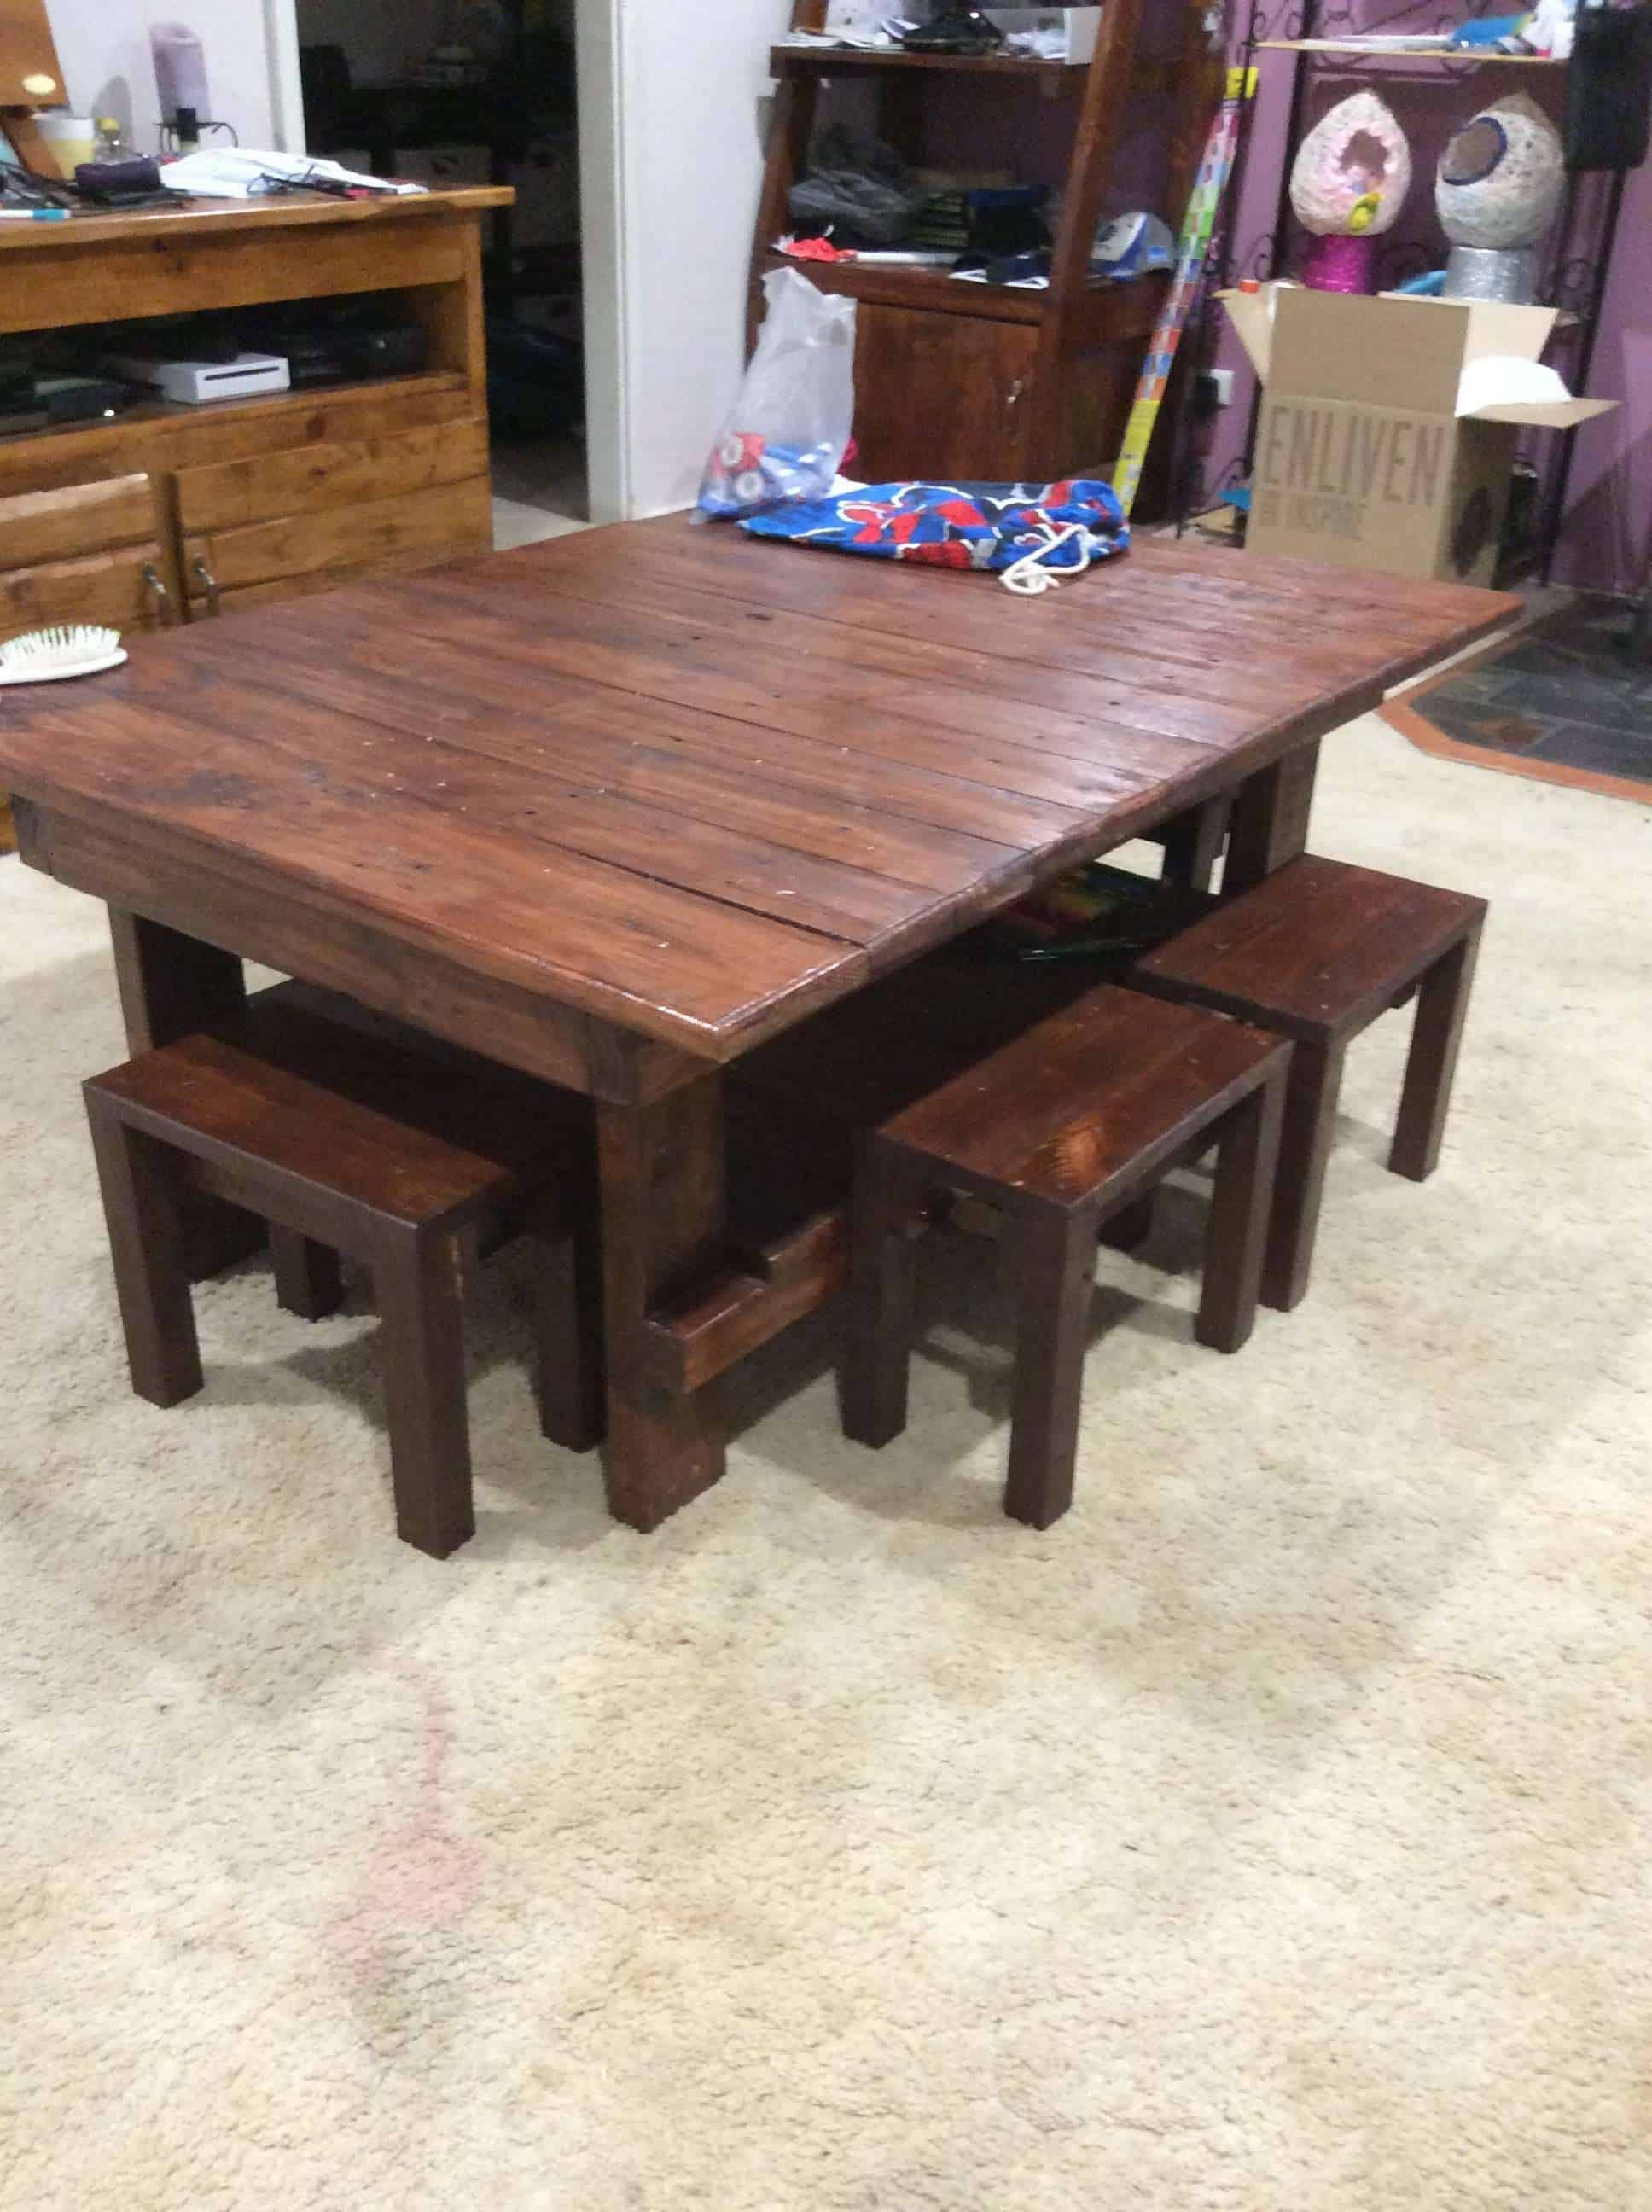 Coffee Table & Chairs for the Kids • 1001 Pallets